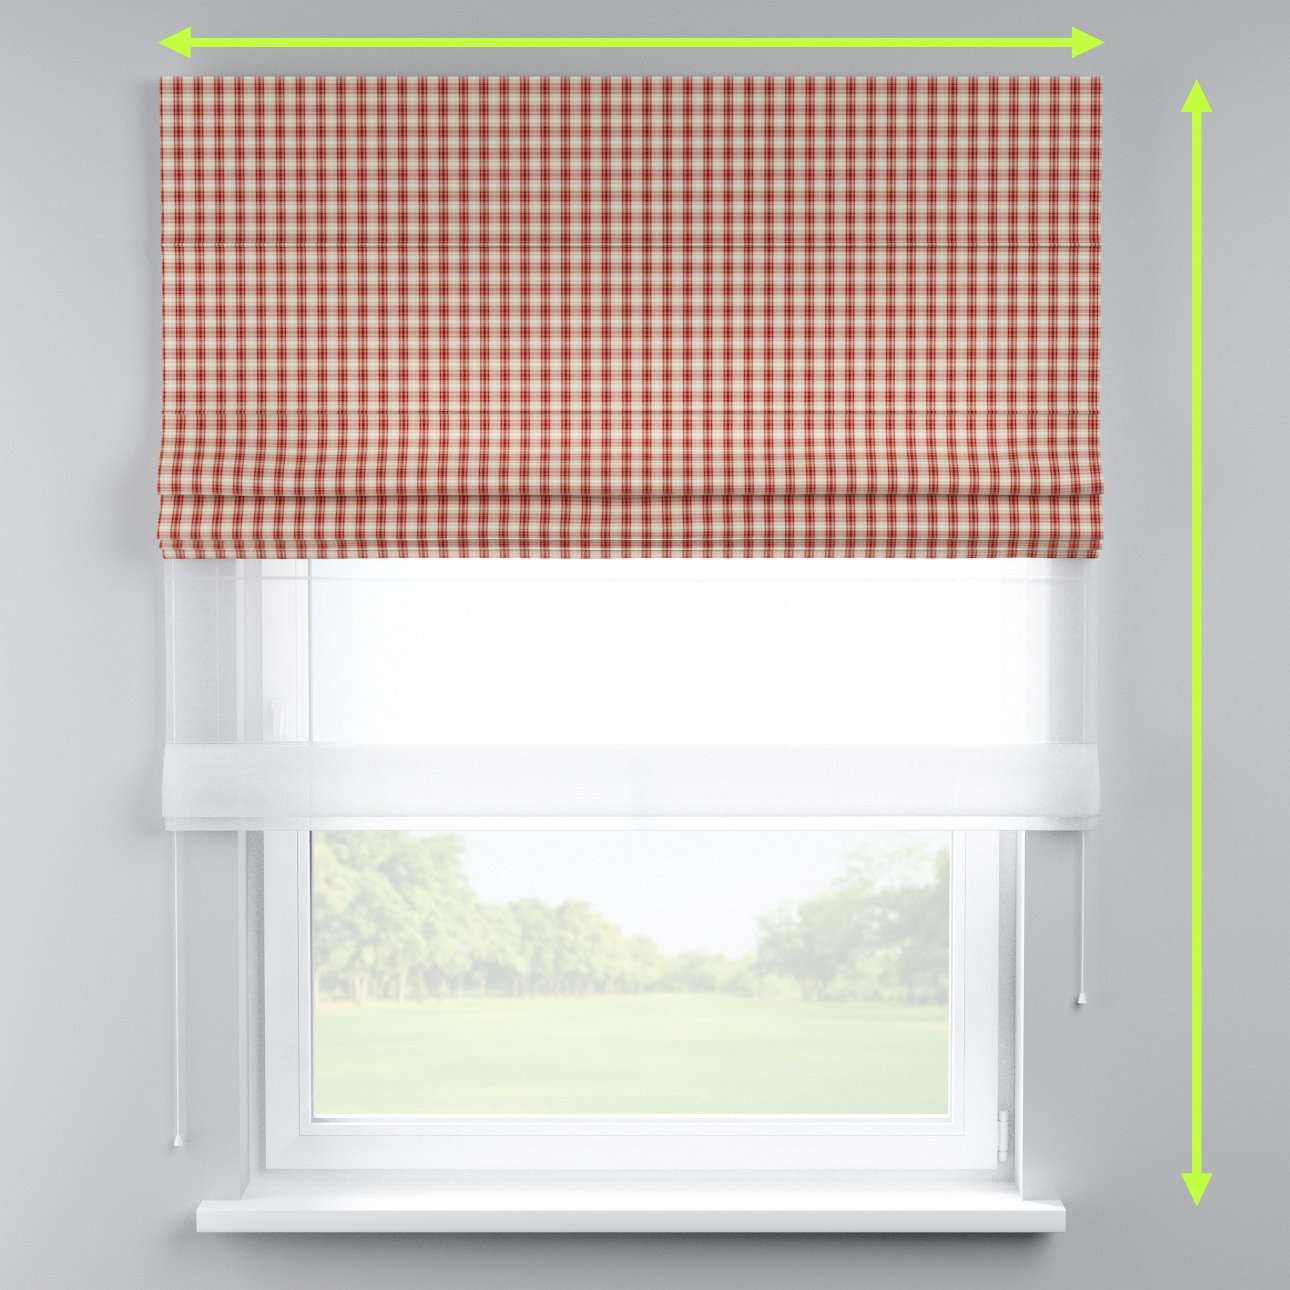 Voile and fabric roman blind (DUO II) in collection Bristol, fabric: 126-09